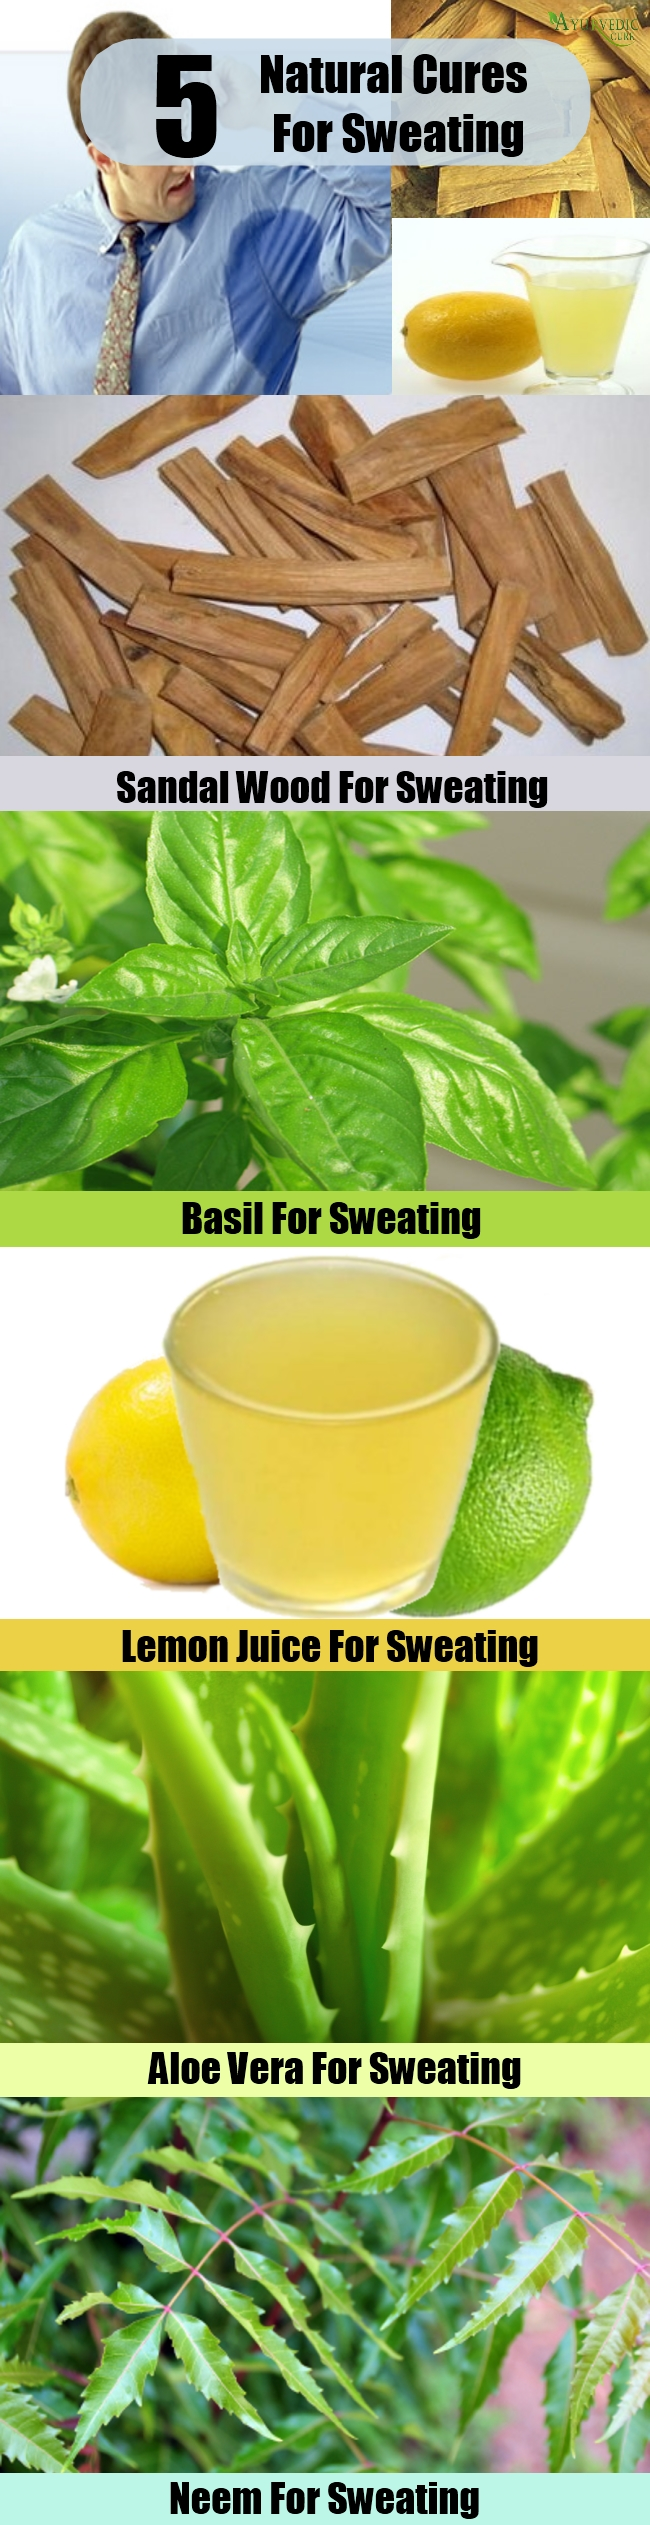 Easy Natural Cures For Sweating